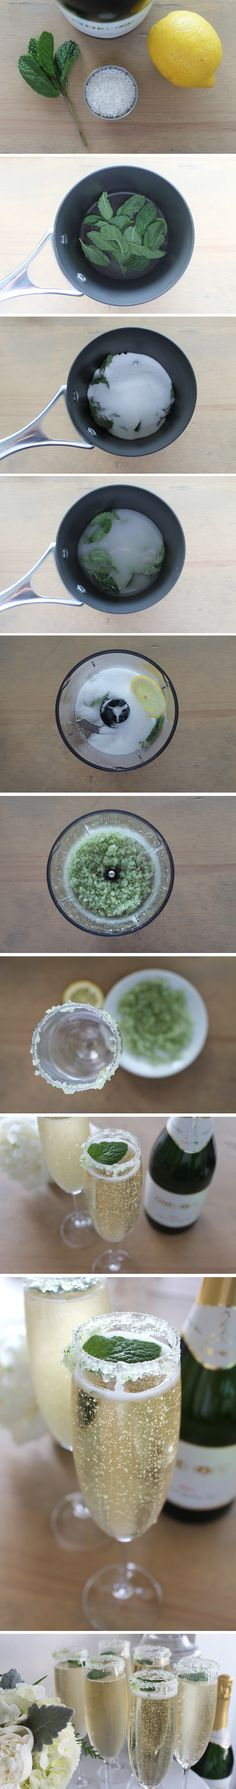 Wintergreen Sparkling Wine Cocktail!  Recipe on blog.onehopewine.com!#NewYears #NewYearsEve #recipe #Holiday #Dinner